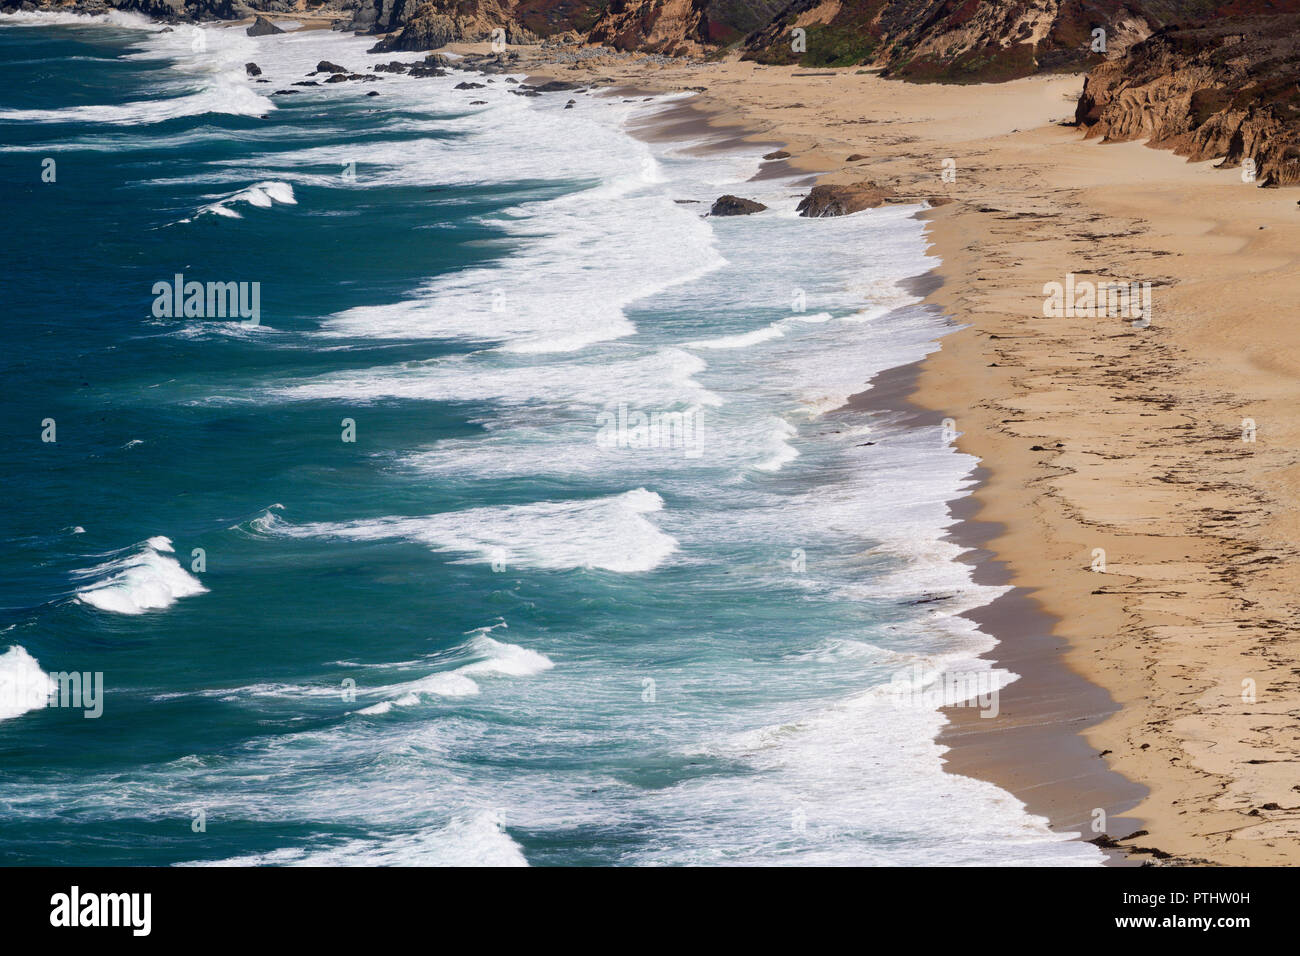 Pacific ocean waves roll in at The private beach below the Point Sur lighthouse along Highway 1 in Big Sur, California. Stock Photo